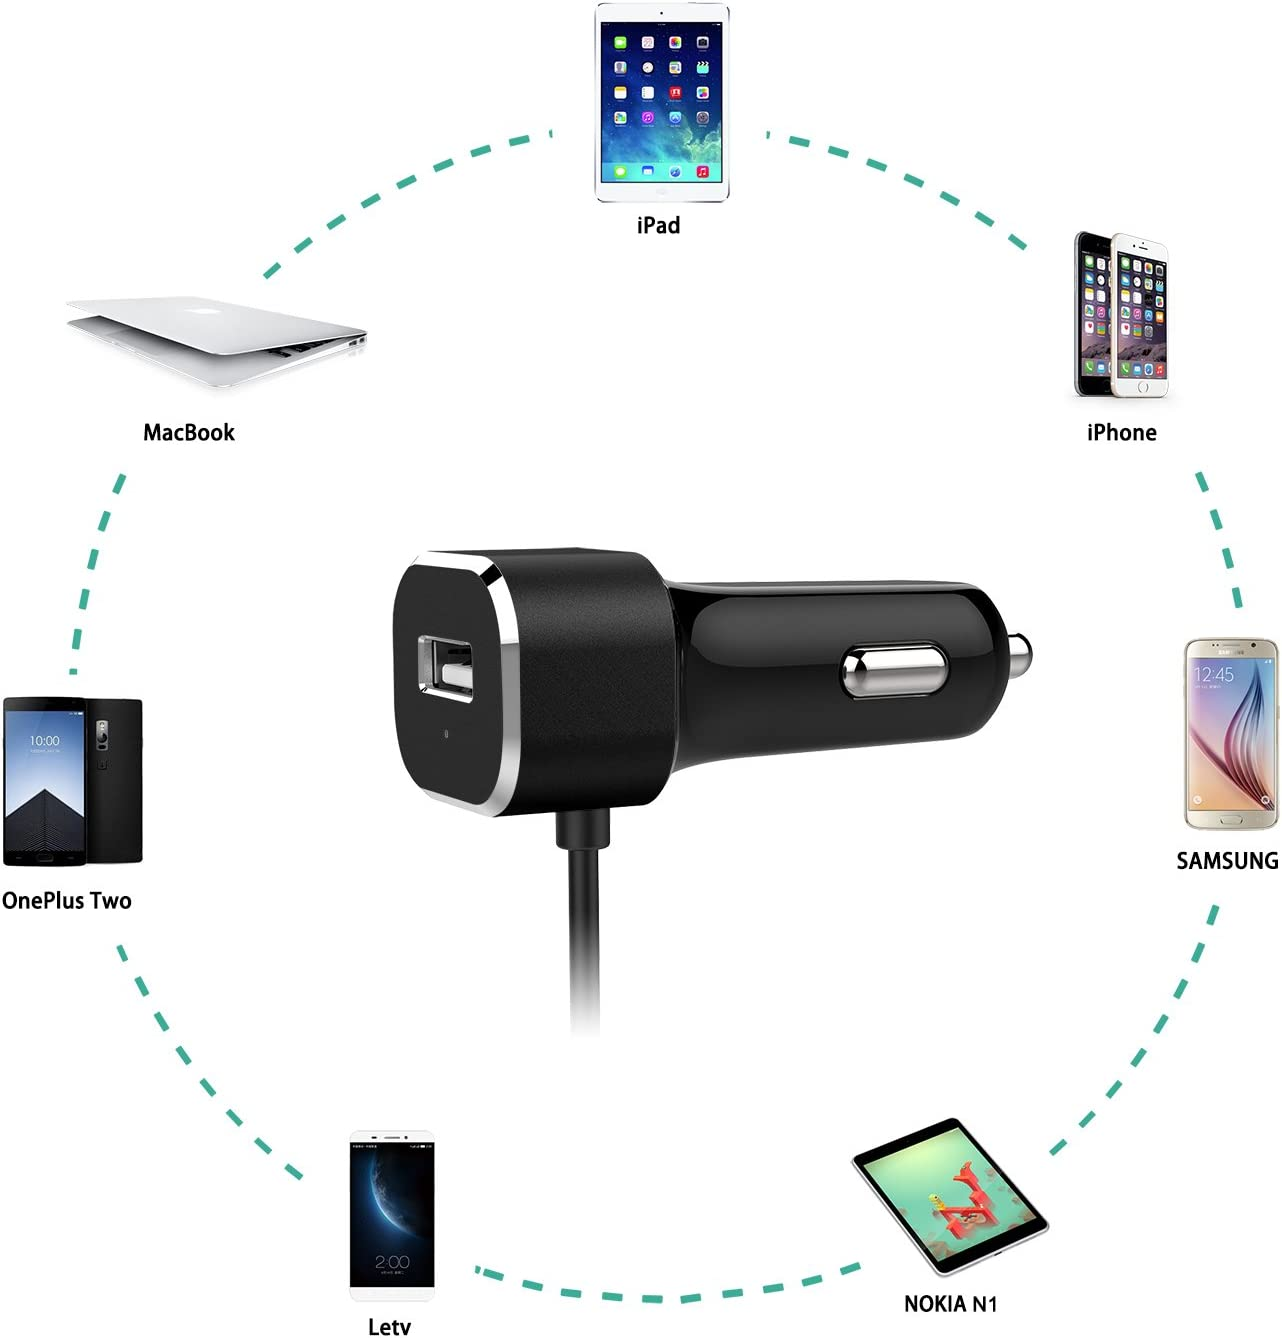 Nekteck 27W USB-C Car Charger Adapter with Integrated Built-in Type-C 3.1 Cord and USB Port for Samsung Galaxy S10//S9//Note Series Pixel 3XL iPhone8 LG Nexus HTC and More USB Type C Car Charger